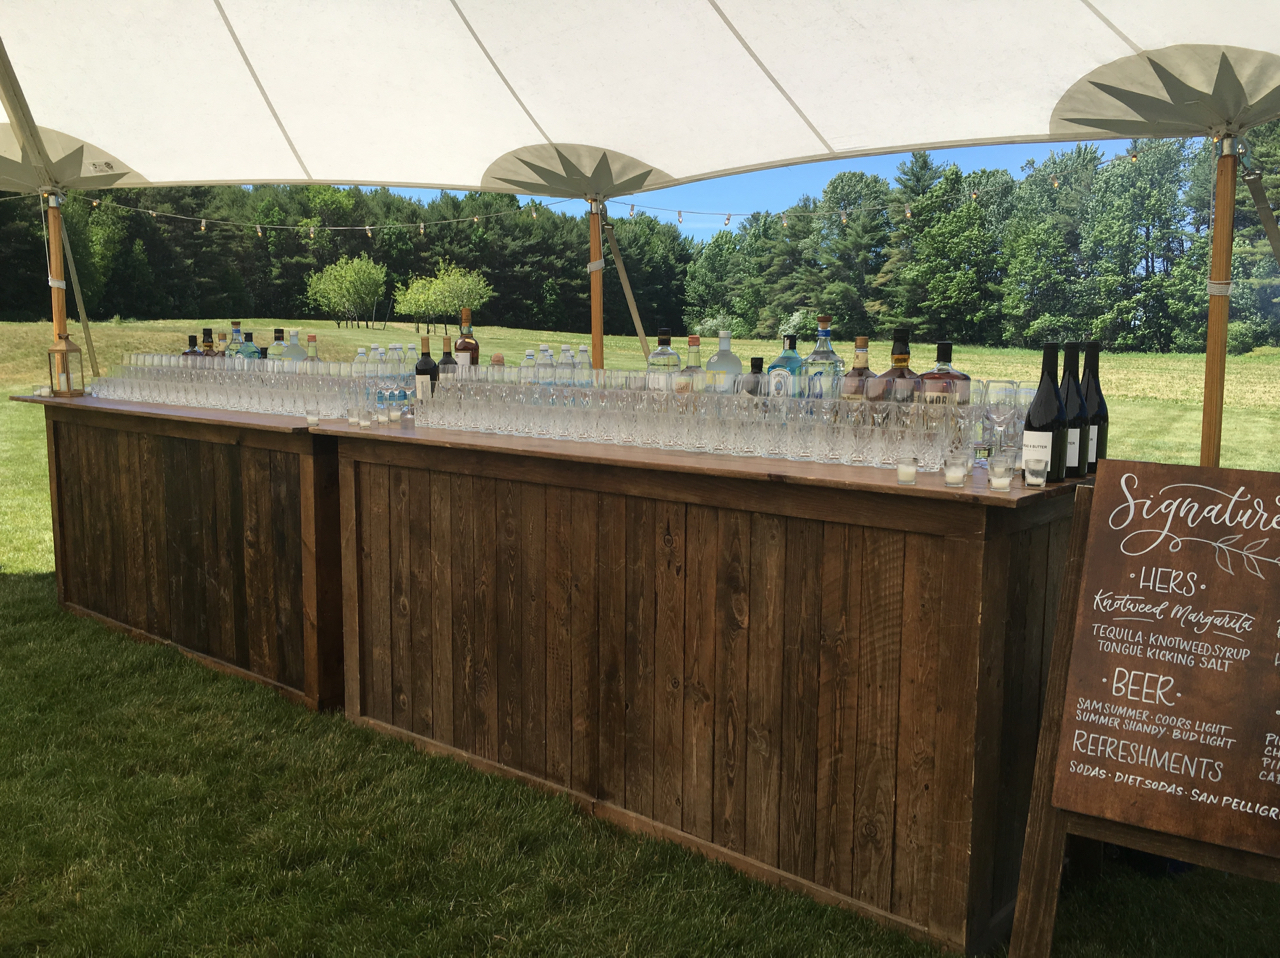 Double and single wood barsDouble bar is 16' long, walnut finish, can be configured as a bar front and bar back for double sided service. Single bars are 8' long.$400 double bar$200 single bar -